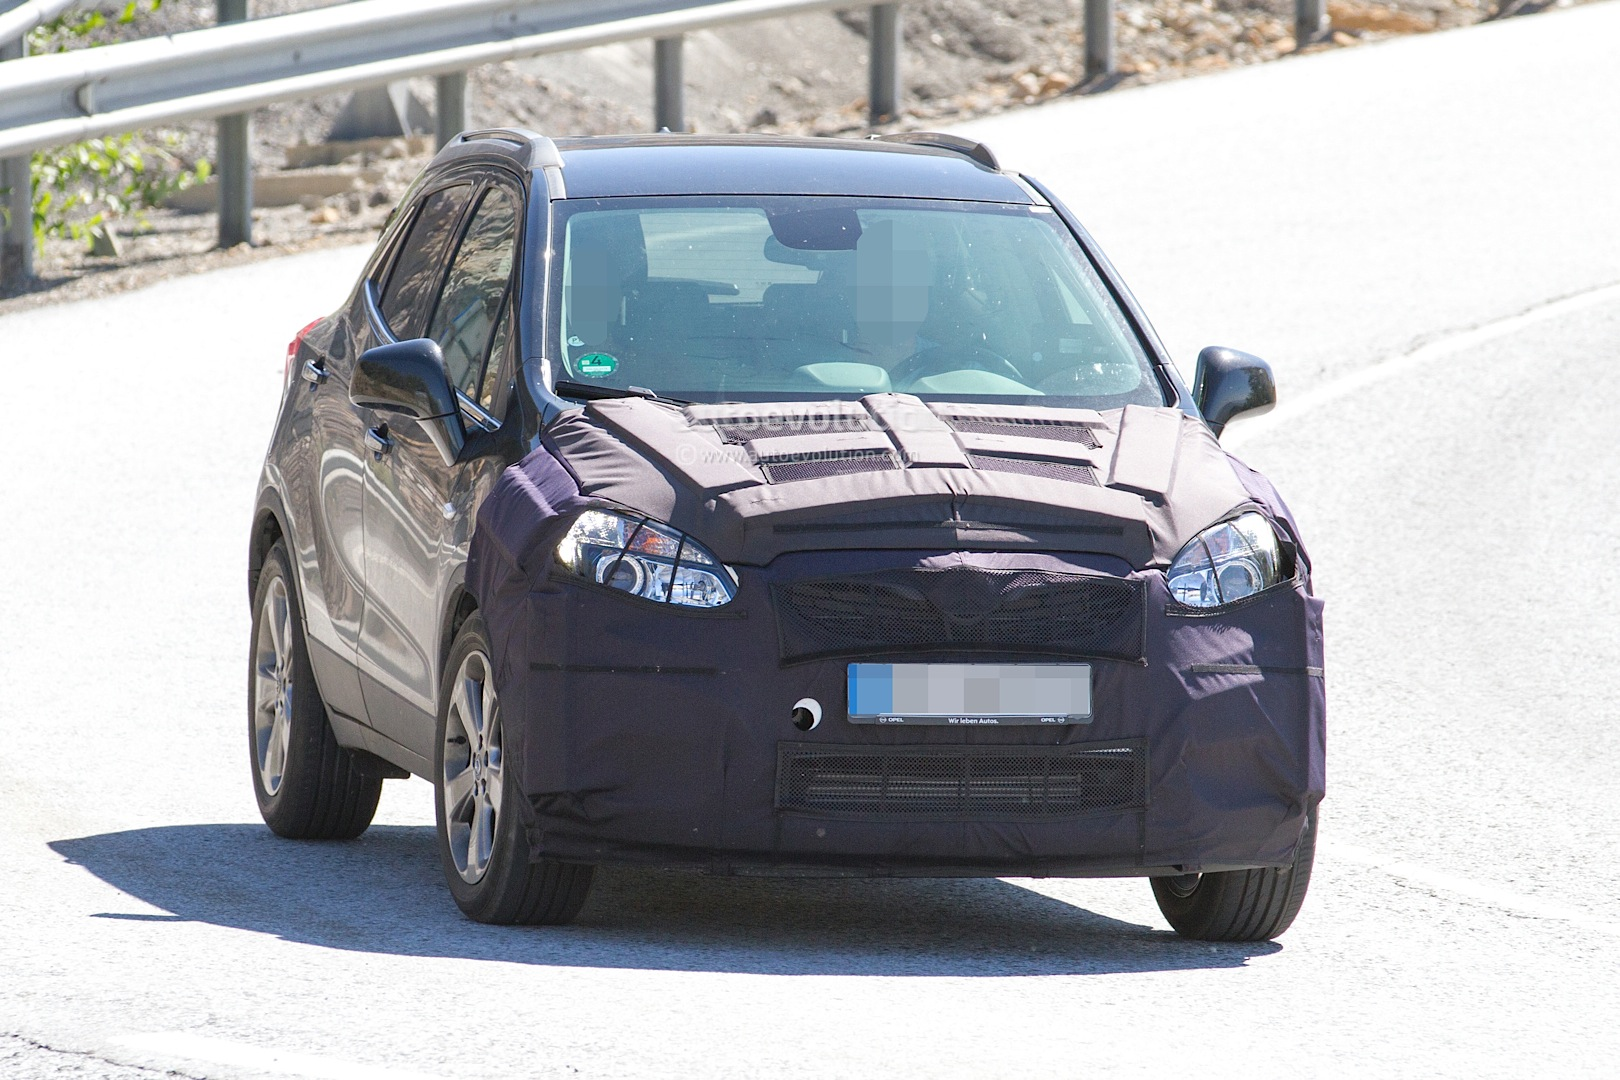 spyshots 2016 opel mokka facelift getting euro 6 engines from astra k hatchback autoevolution. Black Bedroom Furniture Sets. Home Design Ideas